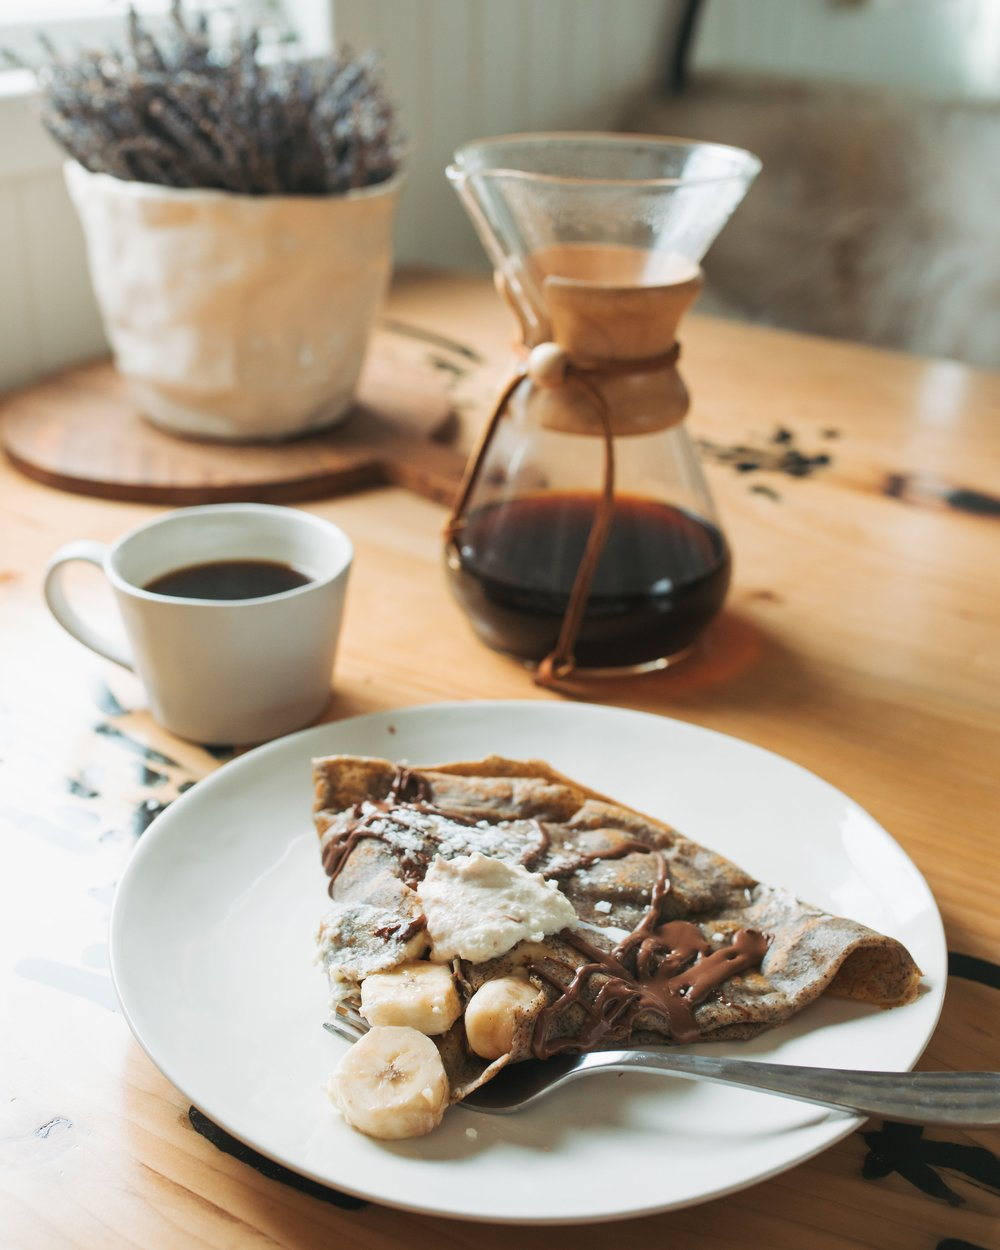 katherine_mendieta_seattle_houseboat_crepe_breakfast.jpg